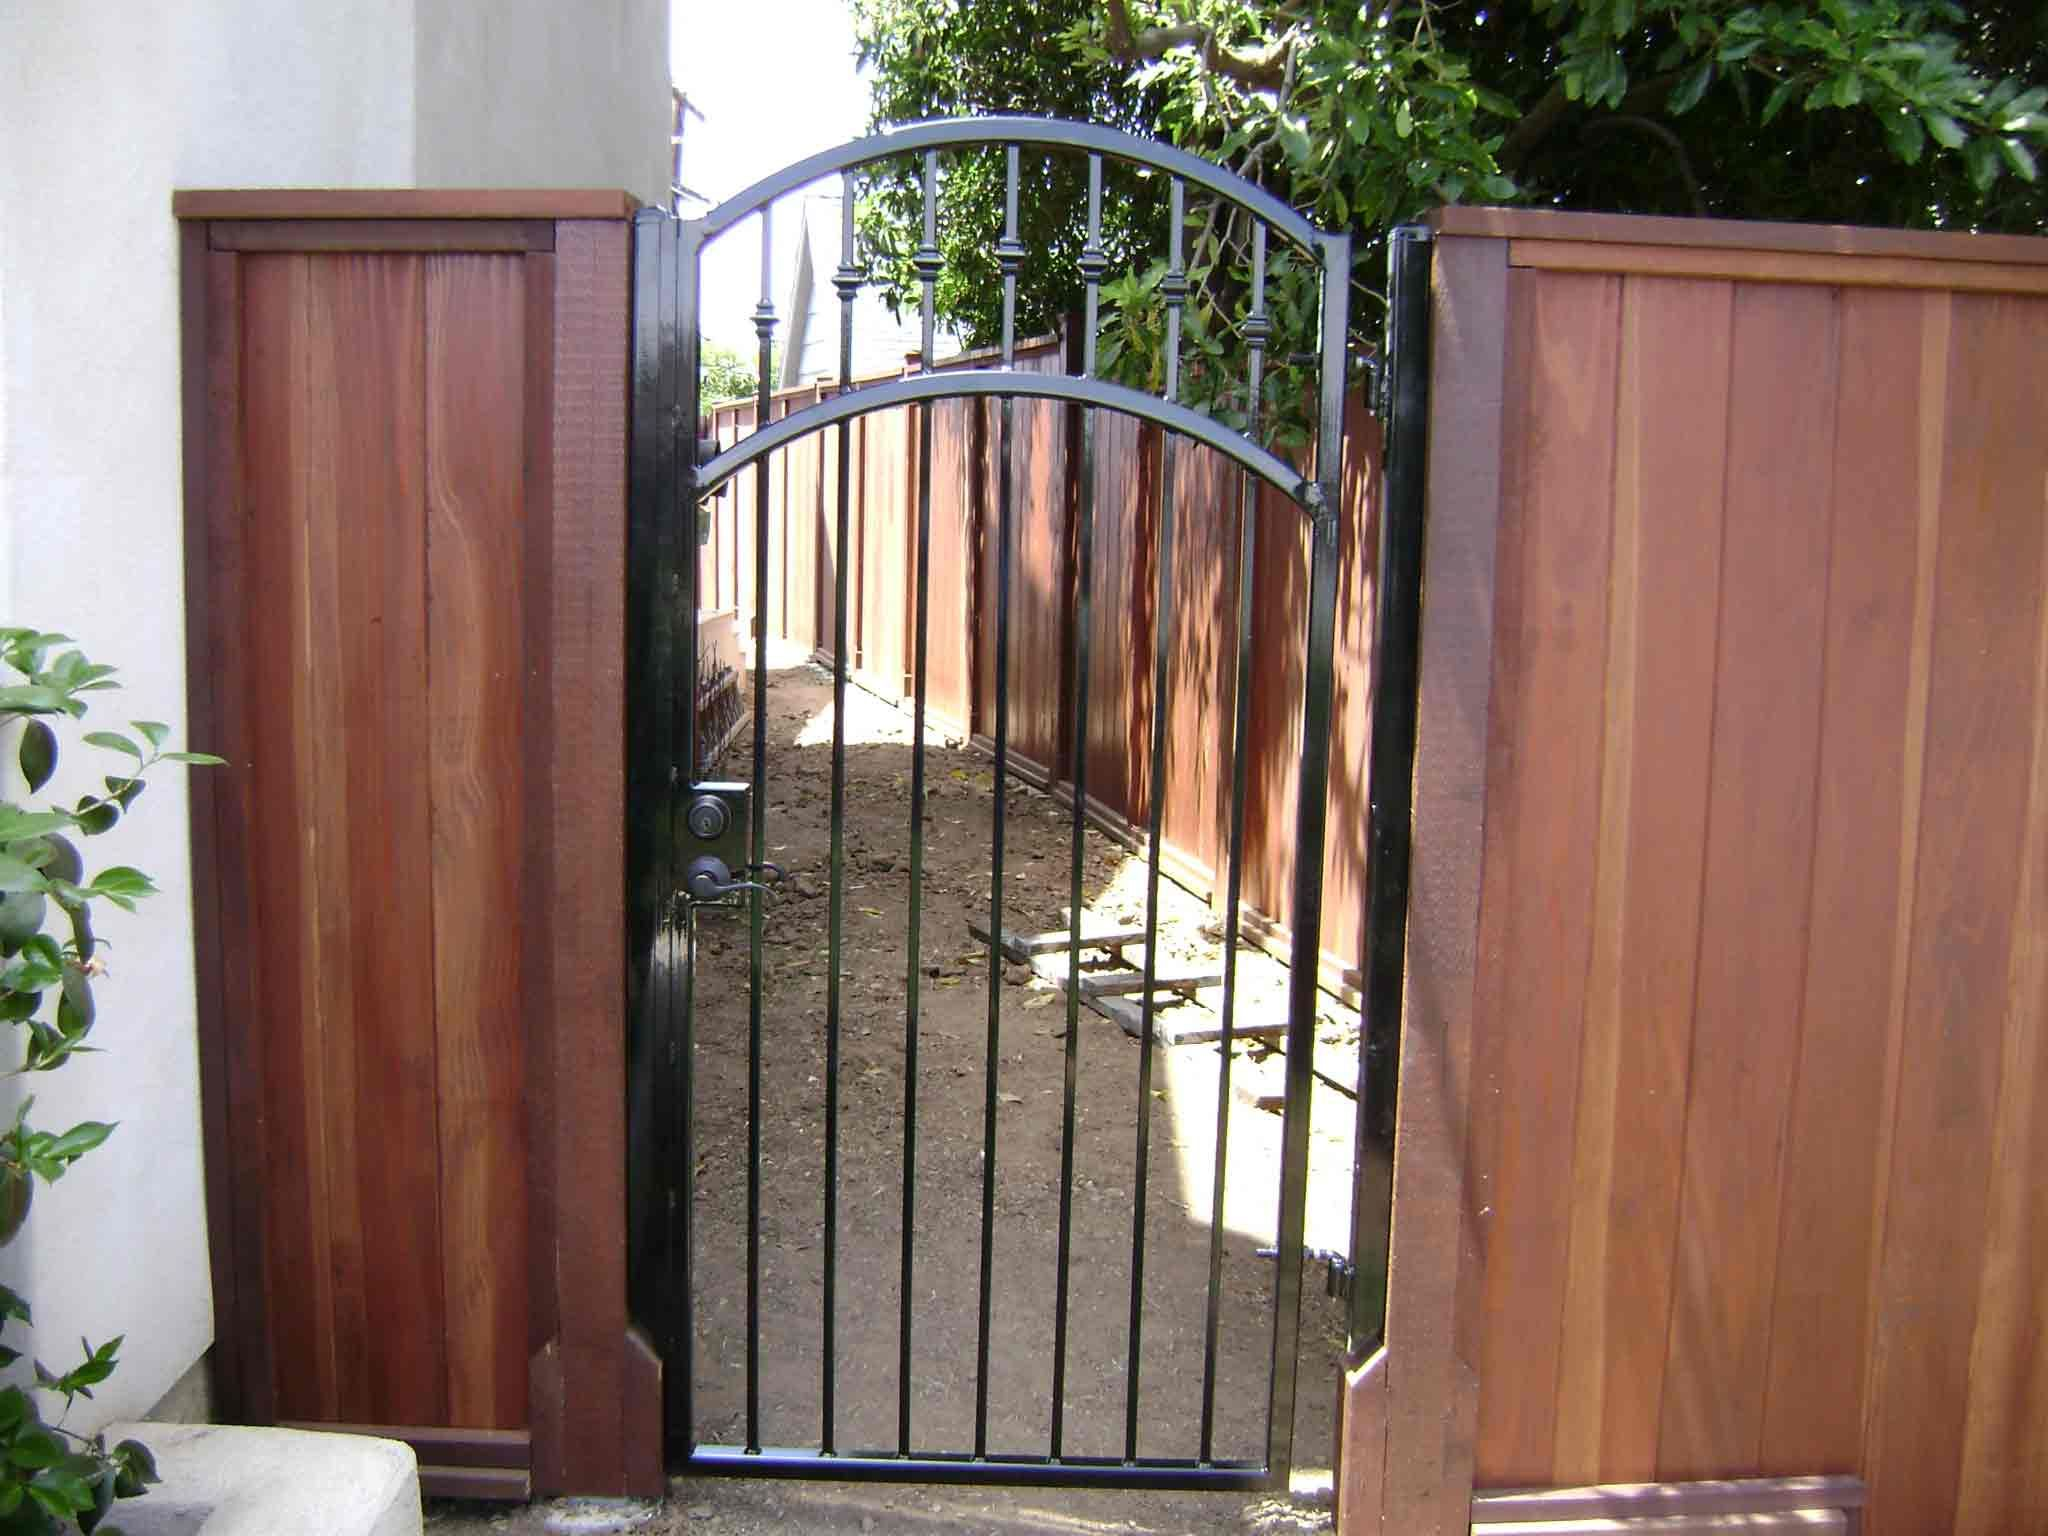 San Diego Residential Wood Wrought Iron Gate Iron Fence Gate